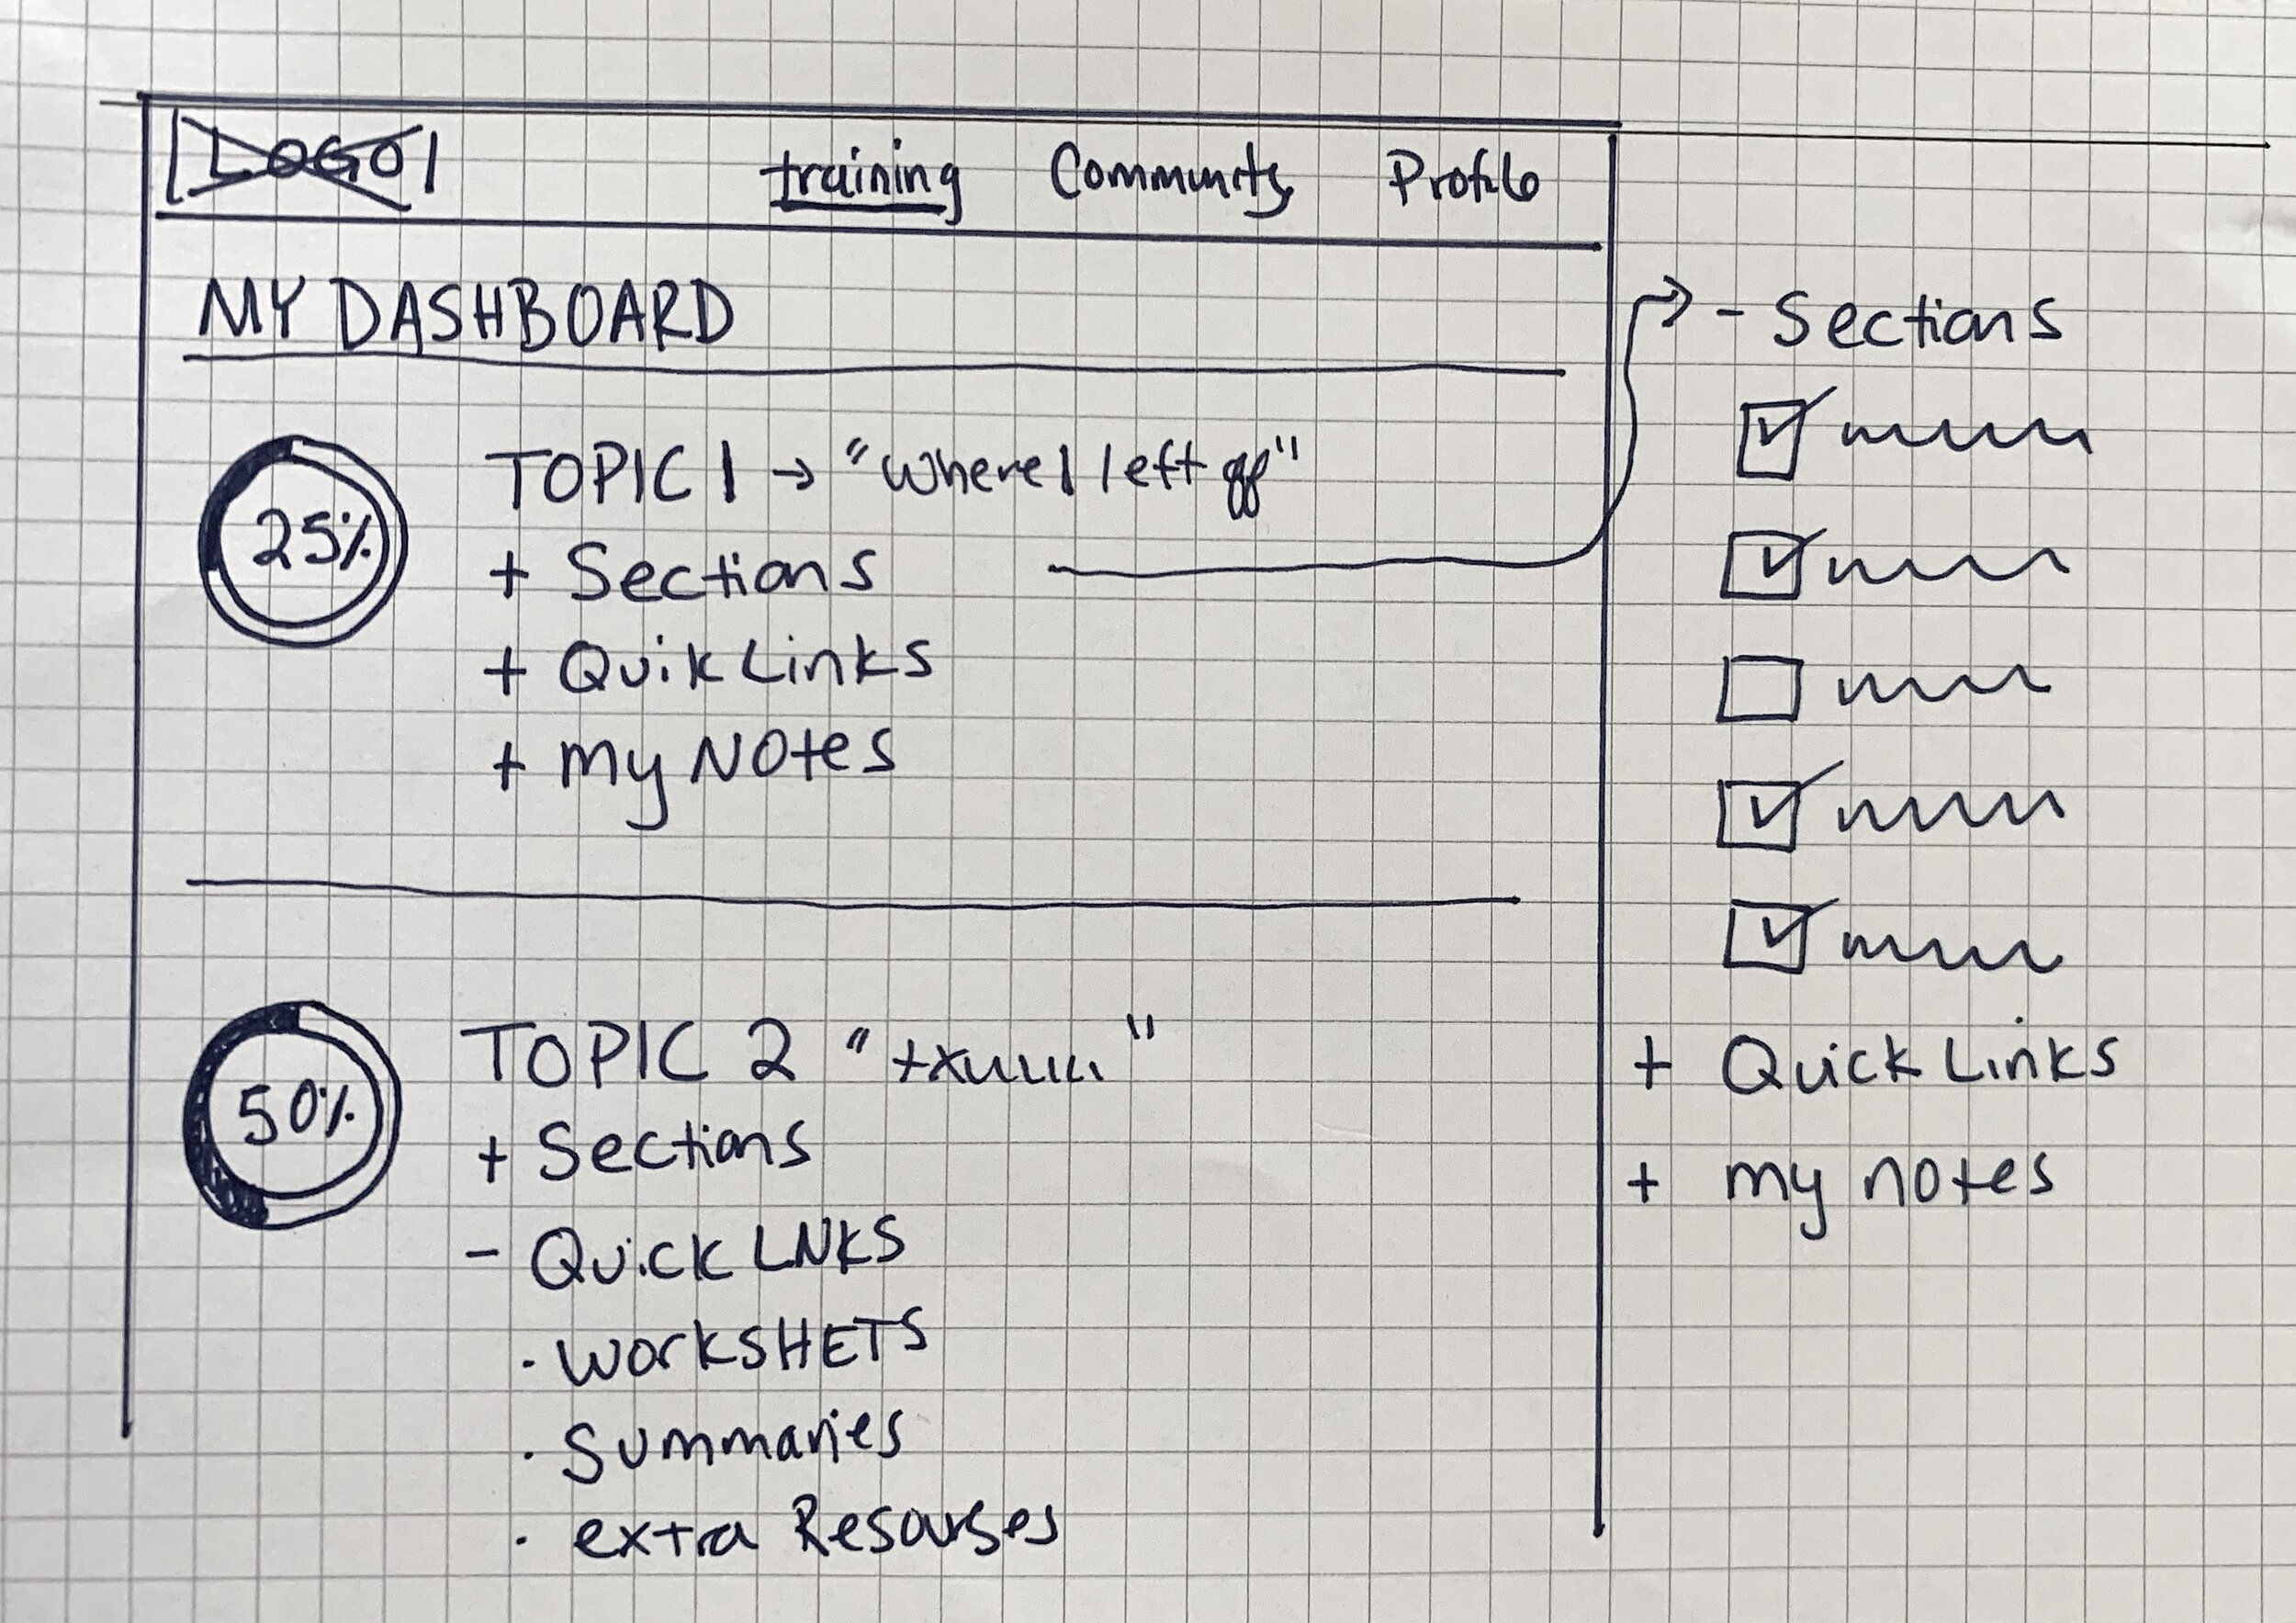 Early sketch of dashboard. Working out how graphics and accordion menus could be used to show information. Making sure user stories match with interactions on dashboard.